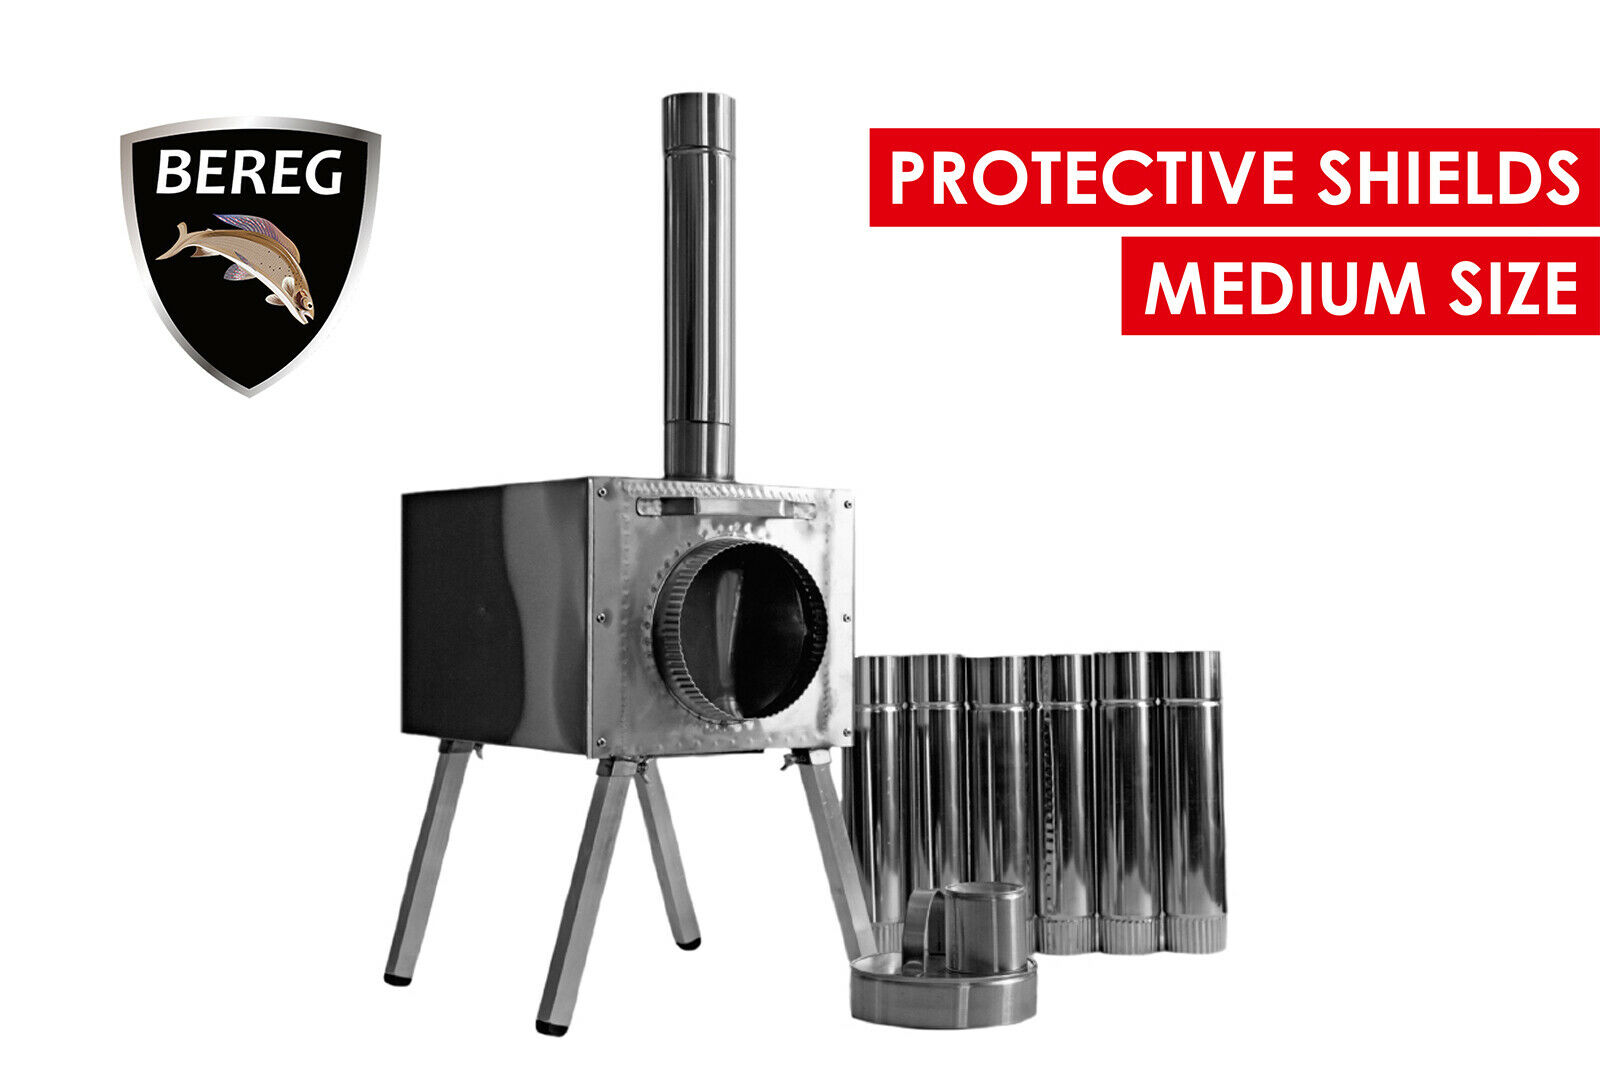 Medium Wood Stove  Economical  Bereg  for tents. Stainless steel. Safe camping  preferential